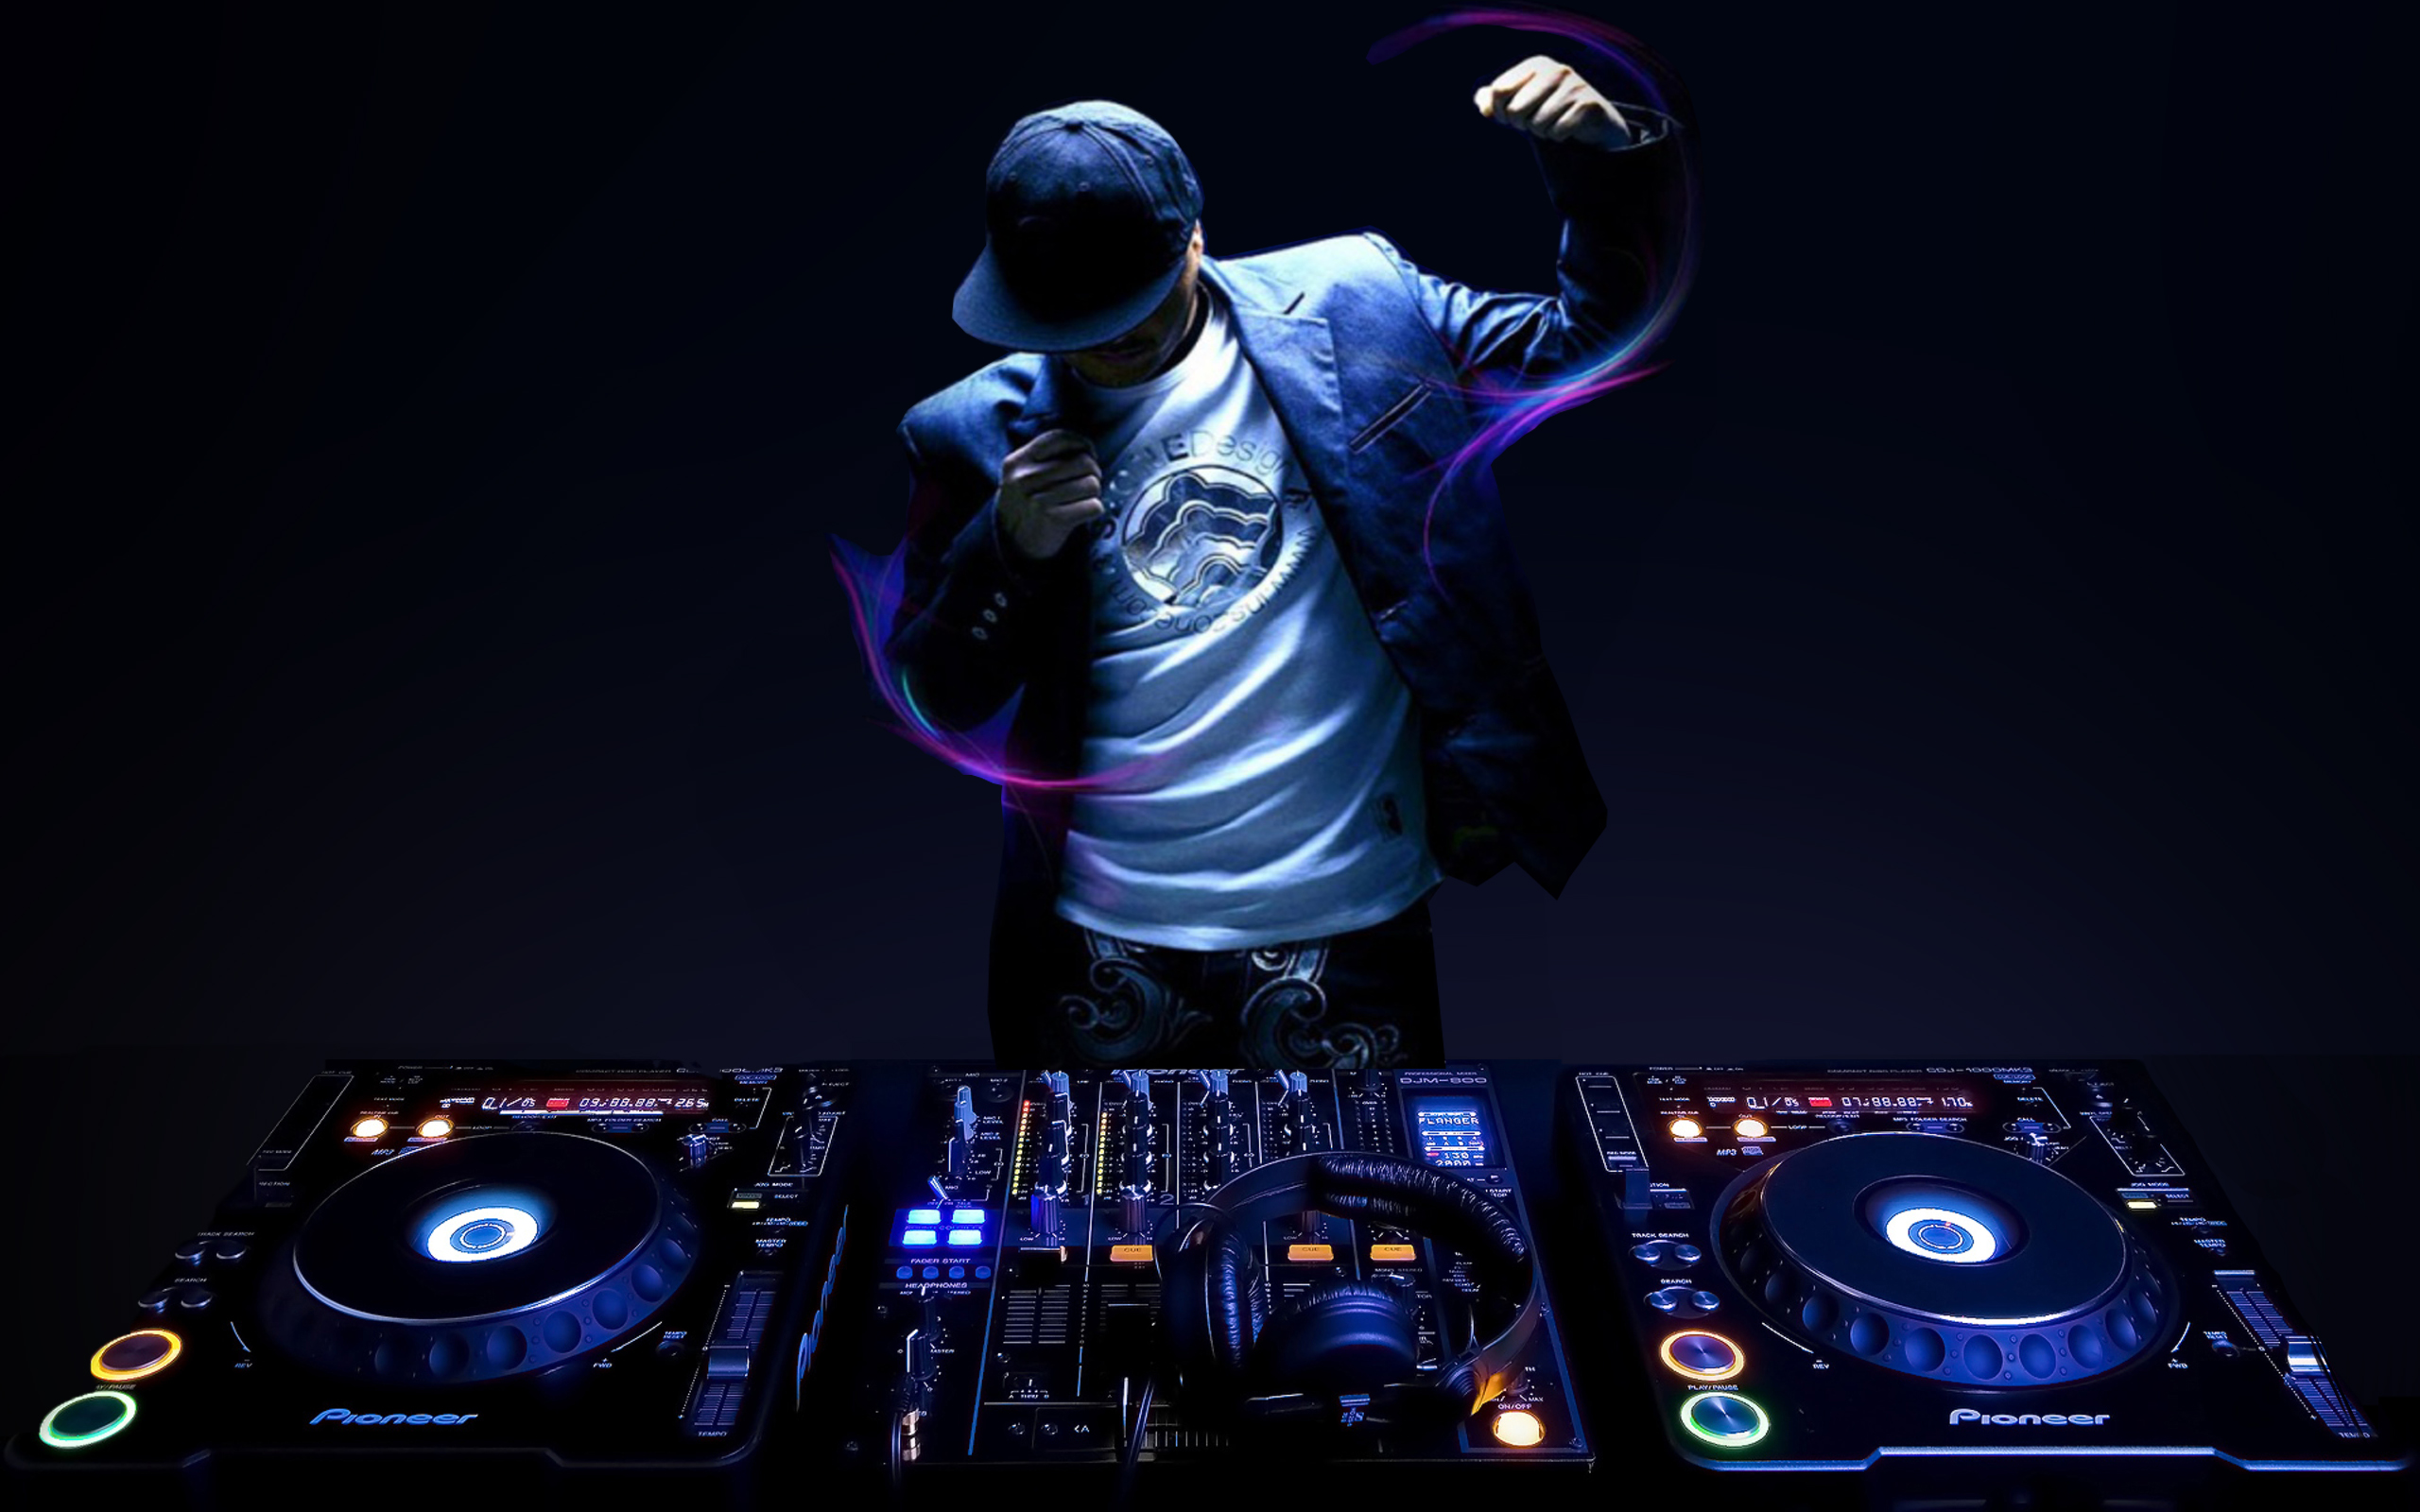 Dj Full HD Wallpaper